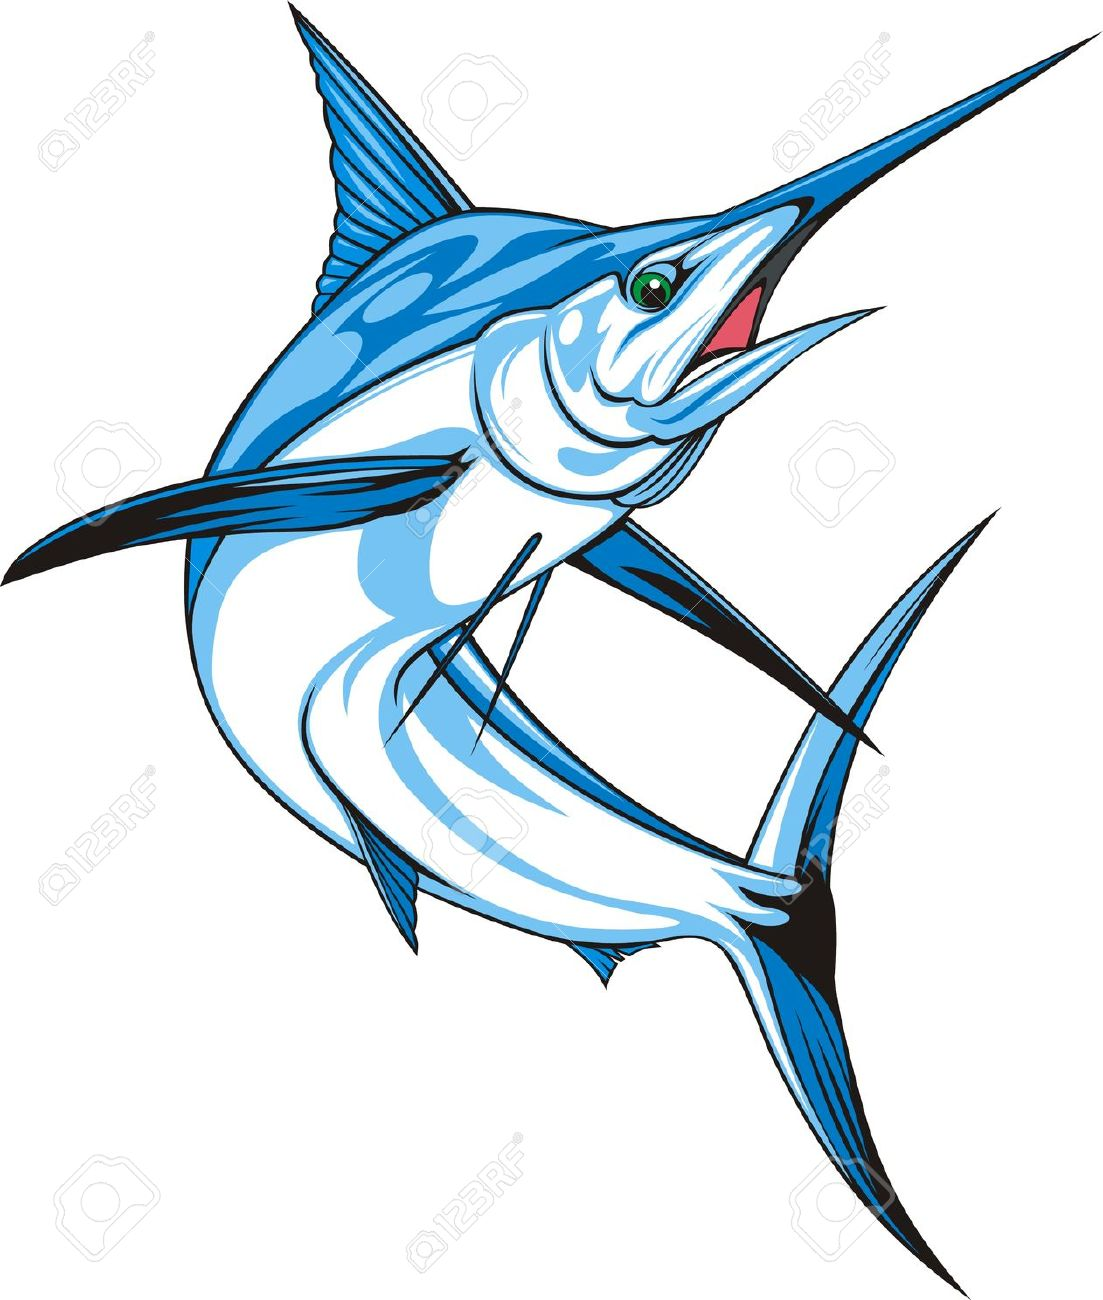 Sailfish clipart #12, Download drawings